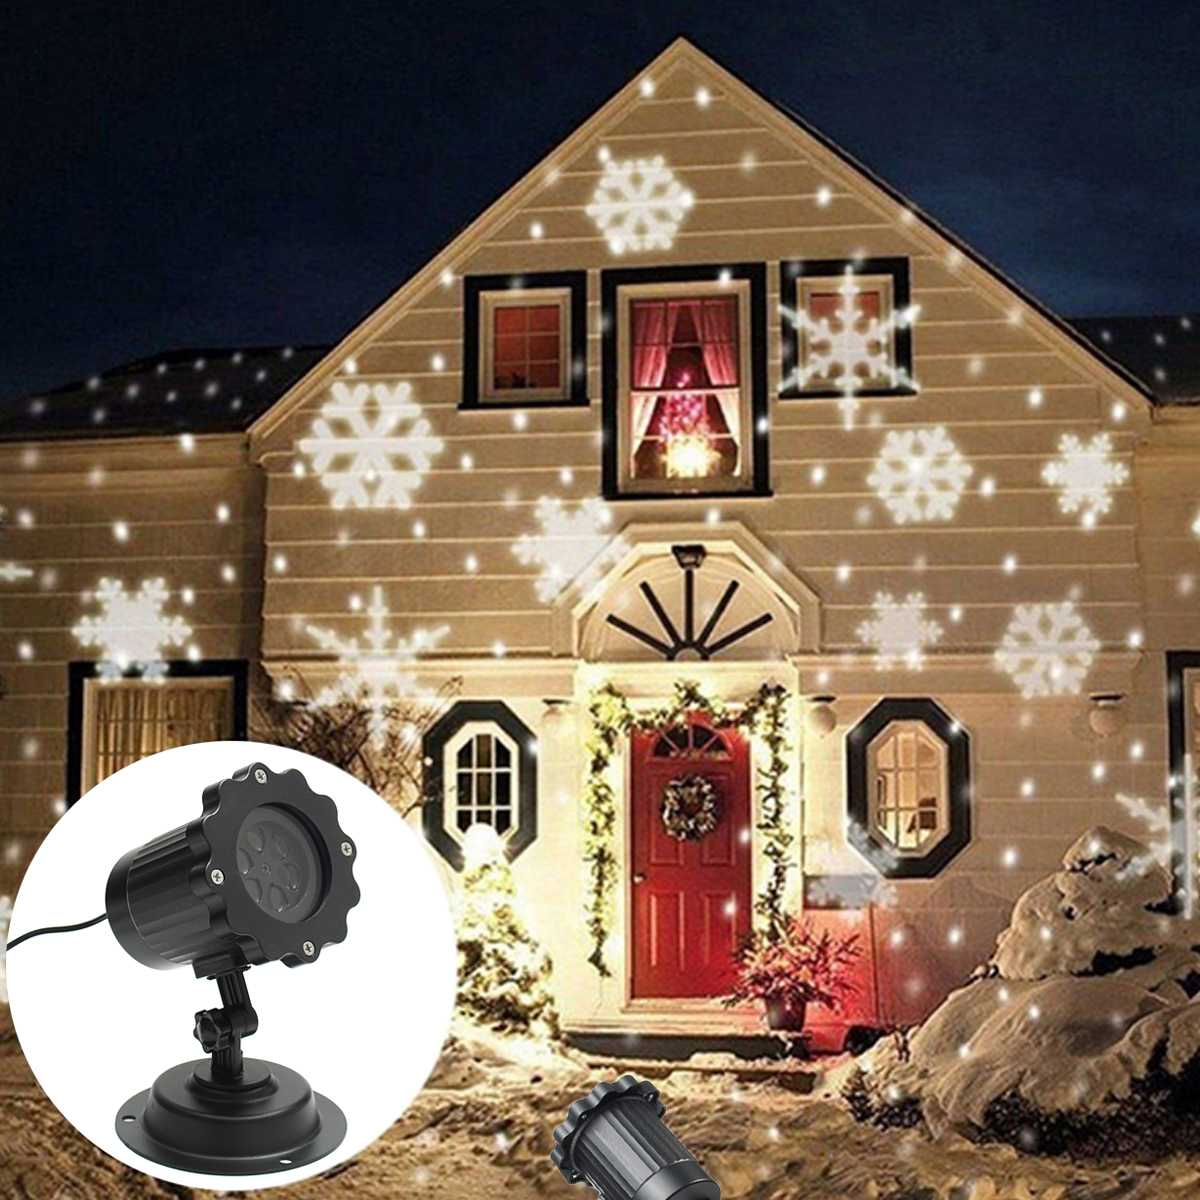 Christmas Automatic Moving Snowflake Light Outdoor Laser Projector Lamp Party Decor IP44 Waterproof Projection Light Big Sale